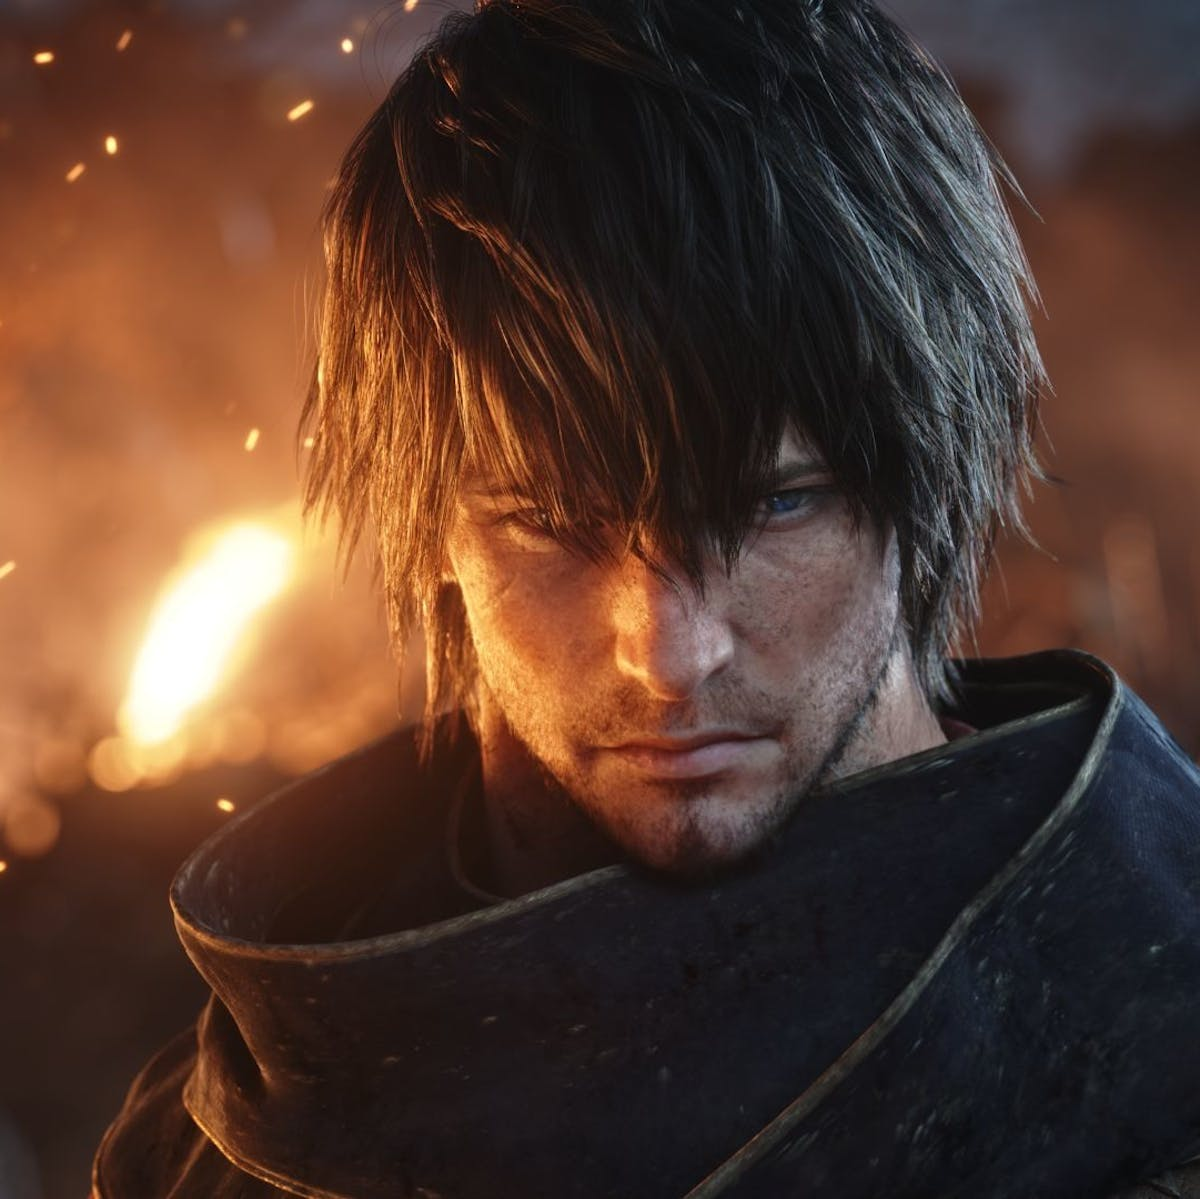 'Final Fantasy 14' on PS5 may unseat 'World of Warcraft' as top MMO